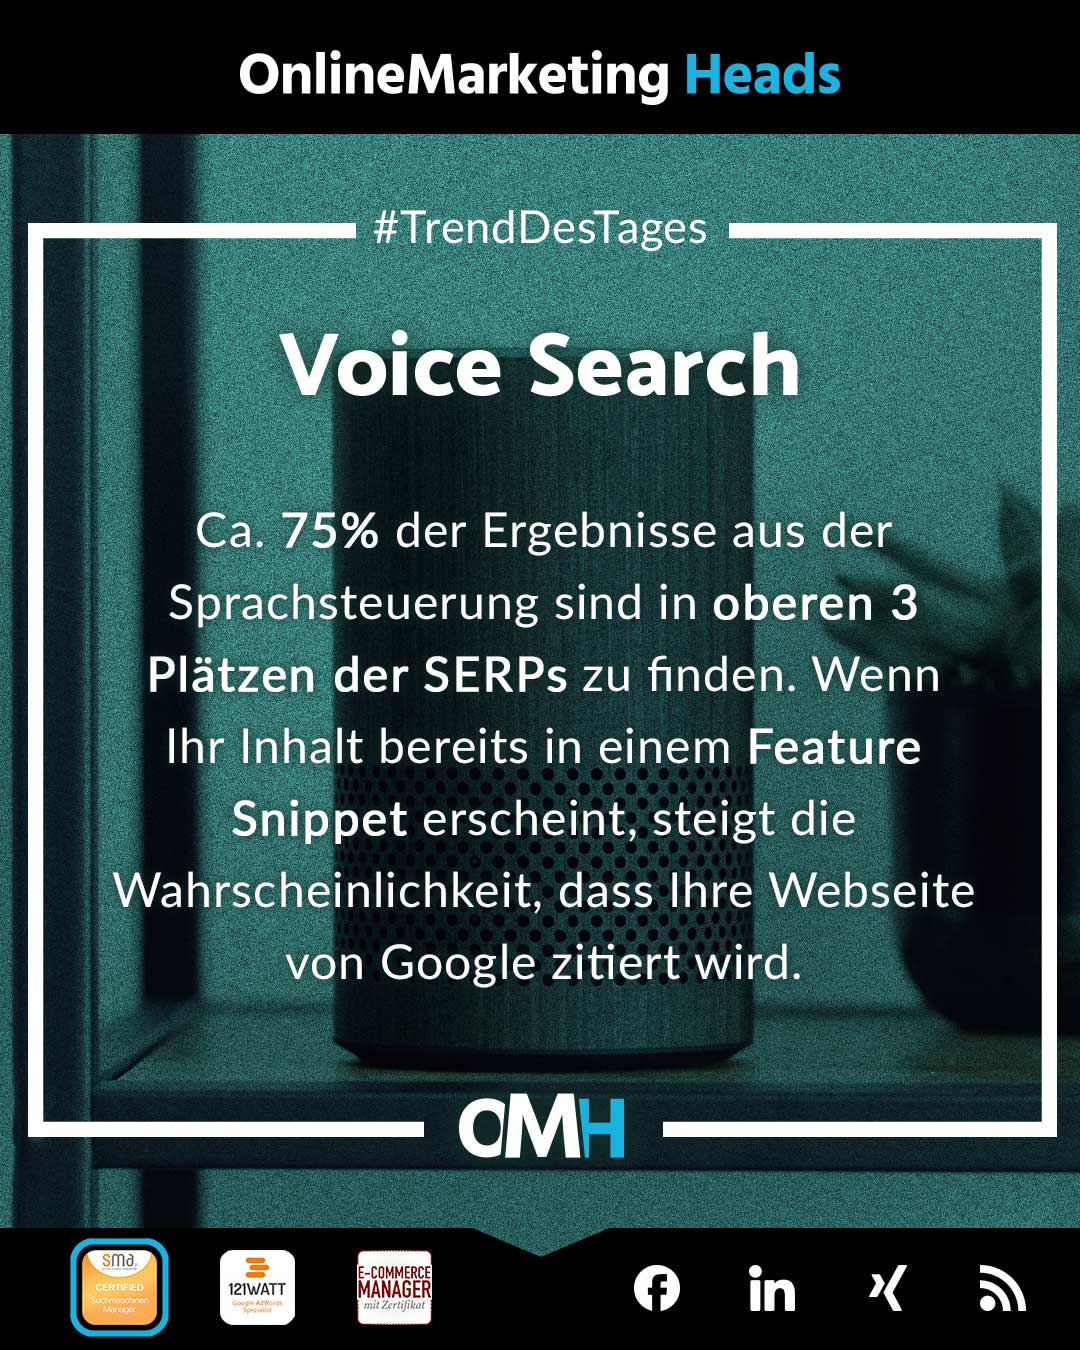 Voice Search SEO Trends 2021 OnlineMarketing Heads